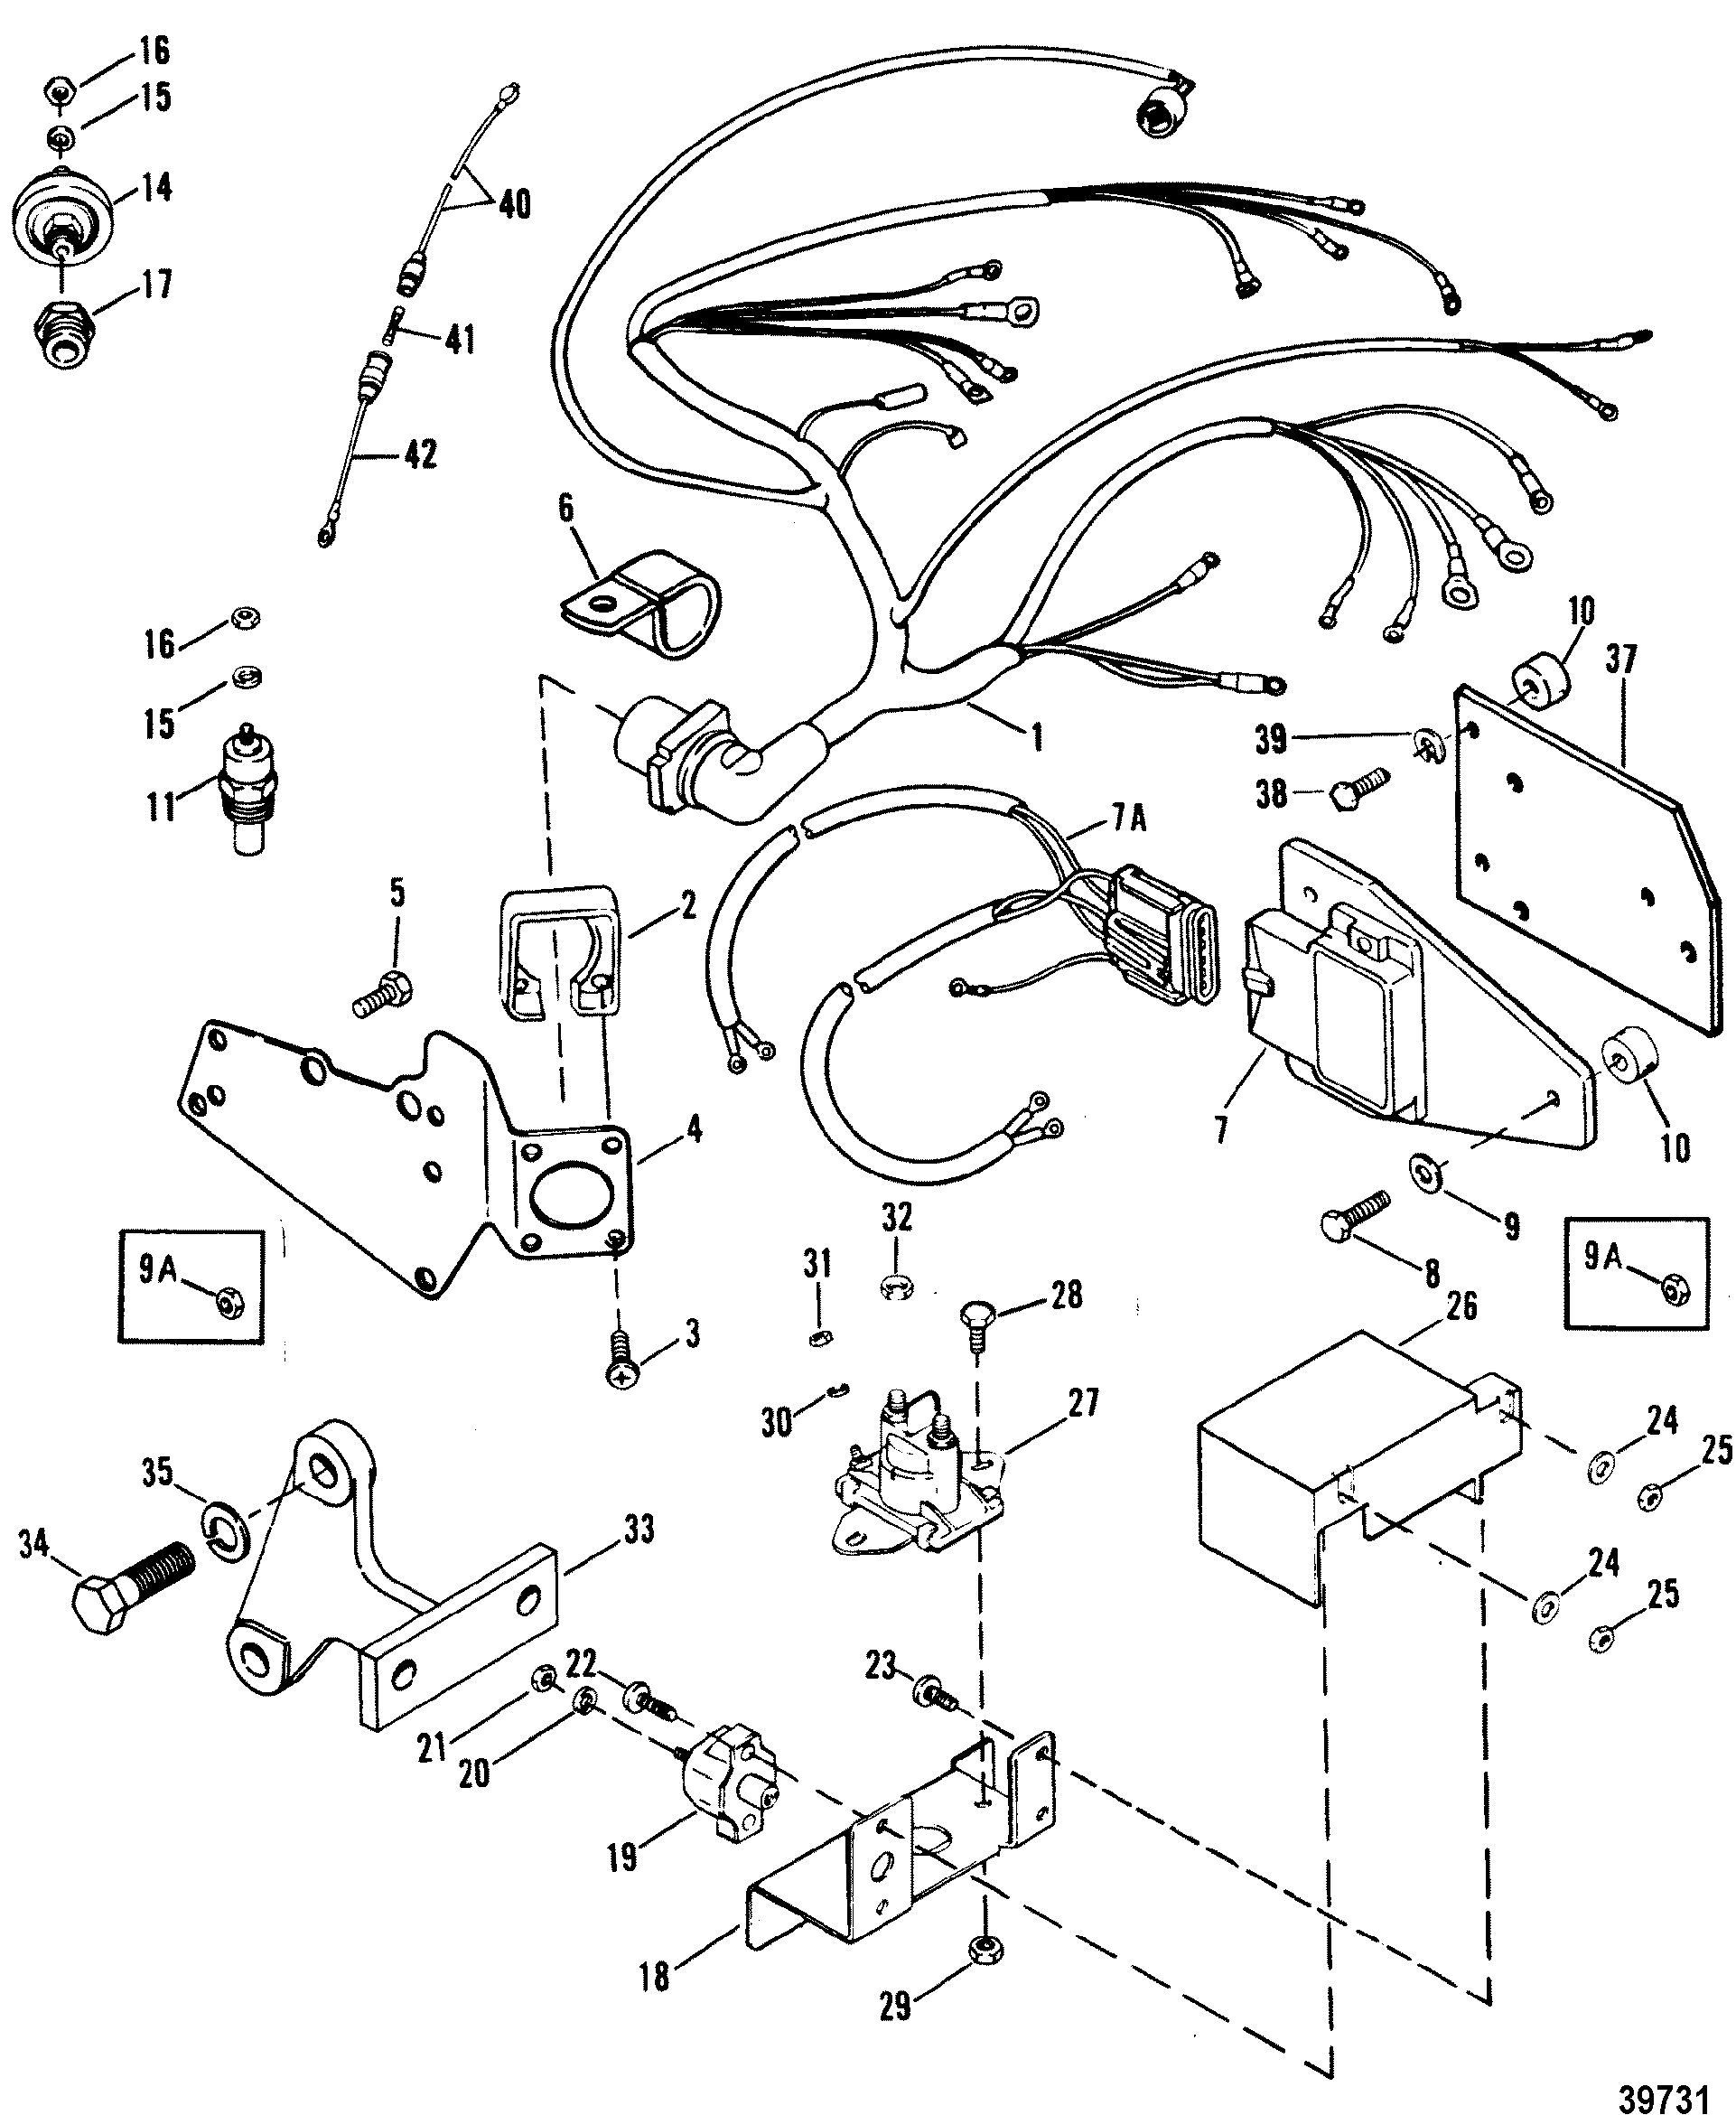 3m Plug Wiring Diagram